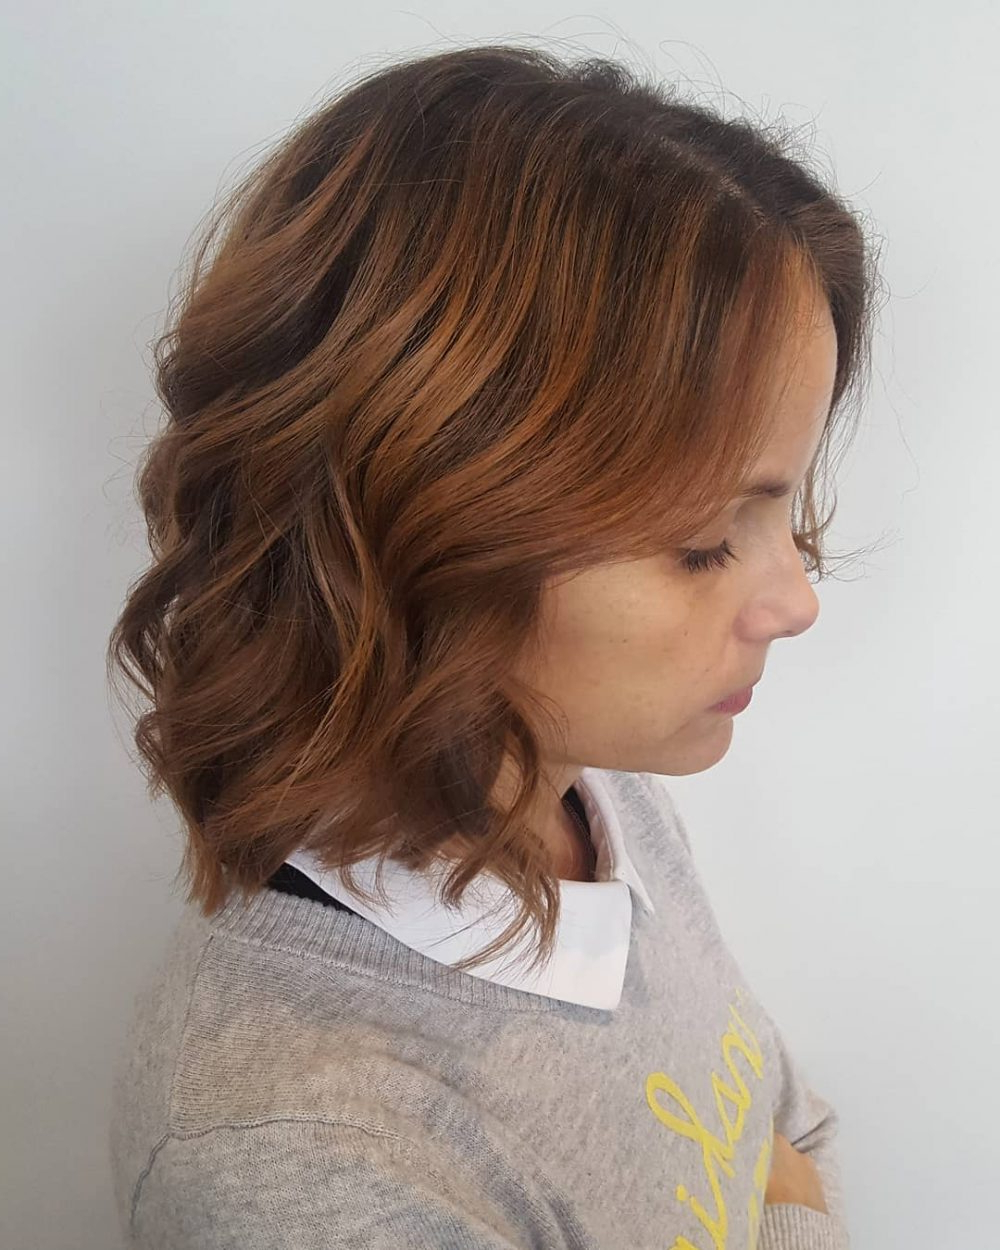 43 Greatest Wavy Bob Hairstyles – Short, Medium And Long In 2018 Inside Tousled Wavy Bob Haircuts (View 10 of 20)